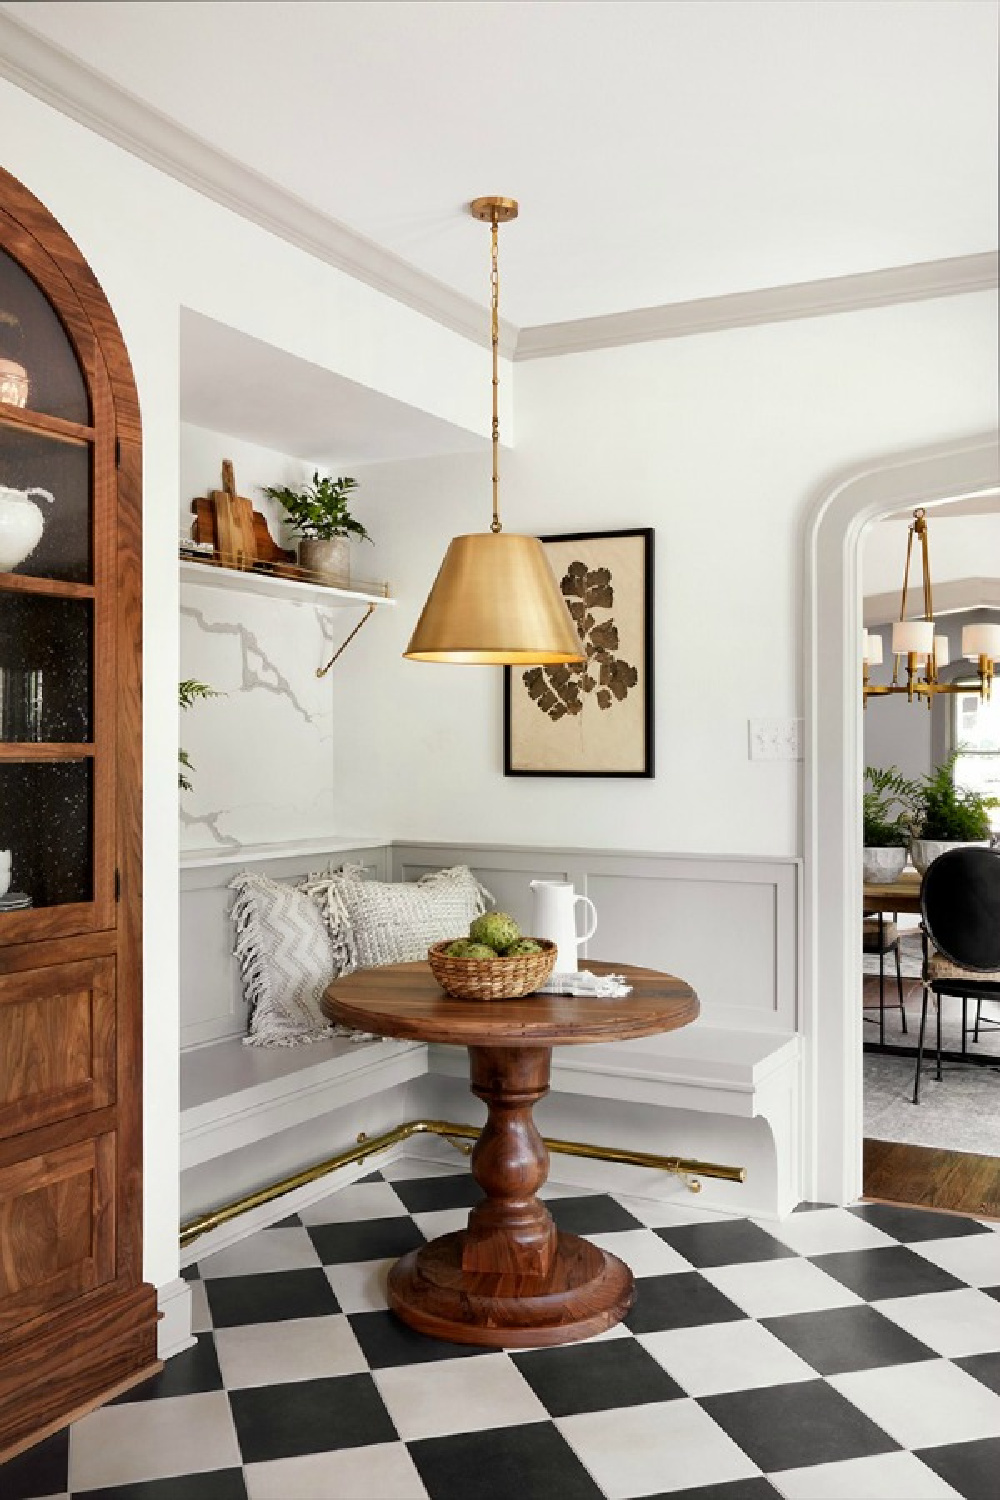 Scrivano episode kitchen breakfast nook with bnquette! Tranquil Tudor cottage renovated on HGTV's Fixer Upper by Chip and Joann. #scrivano #breakfastnook #banquette #checkfloor